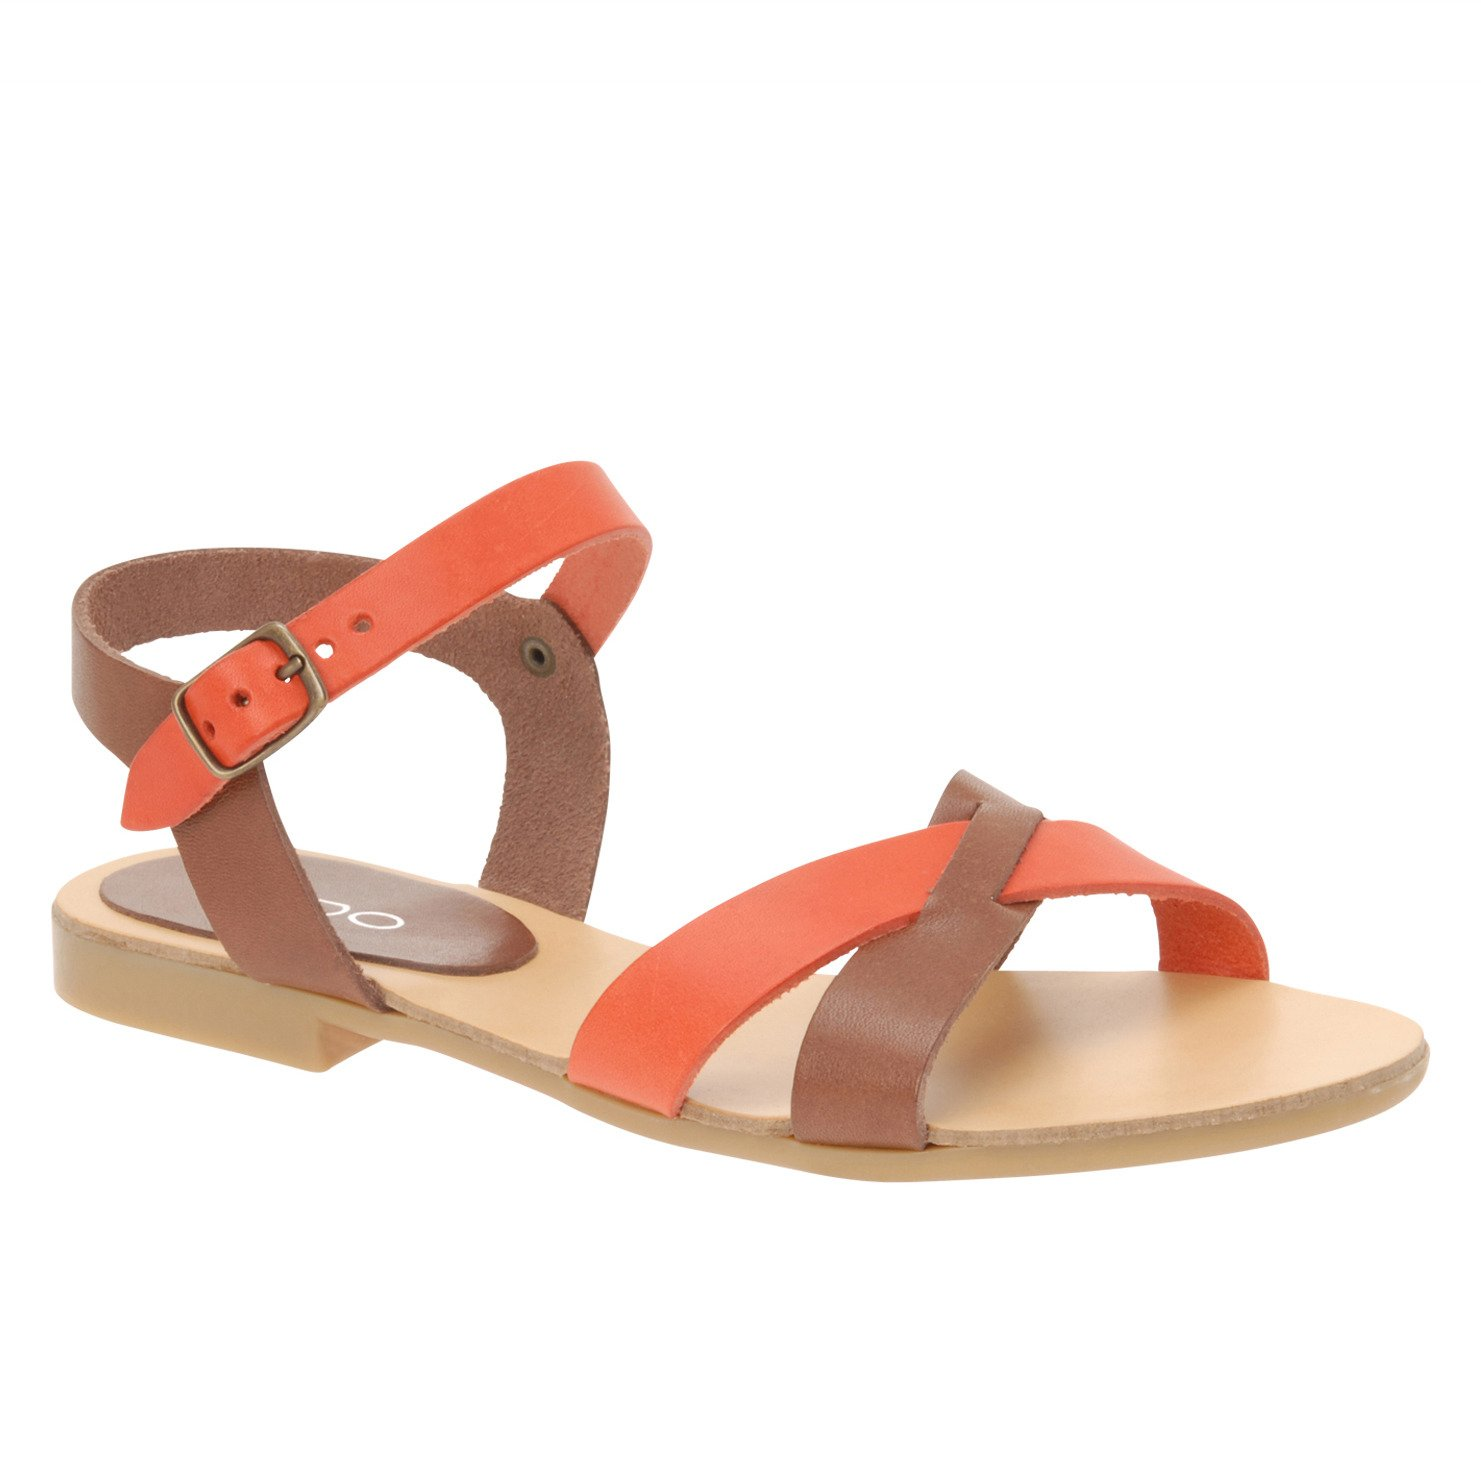 ALDO Pecor – Women Flat Sandals – Peach – 11